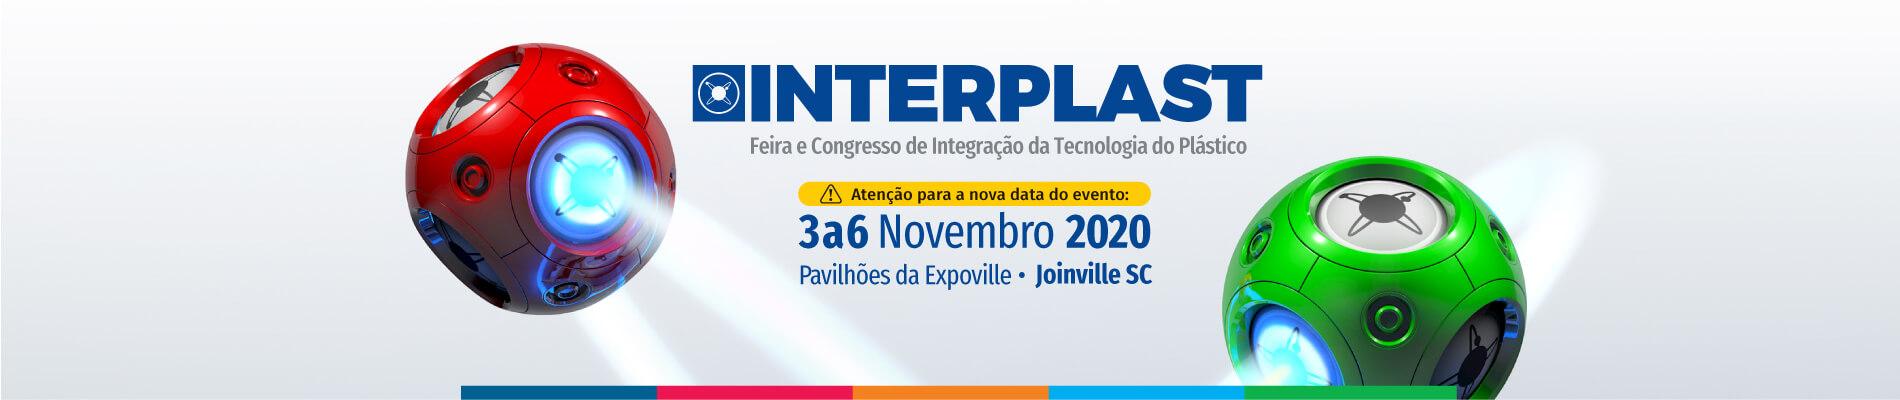 interplast-banner-horizontal